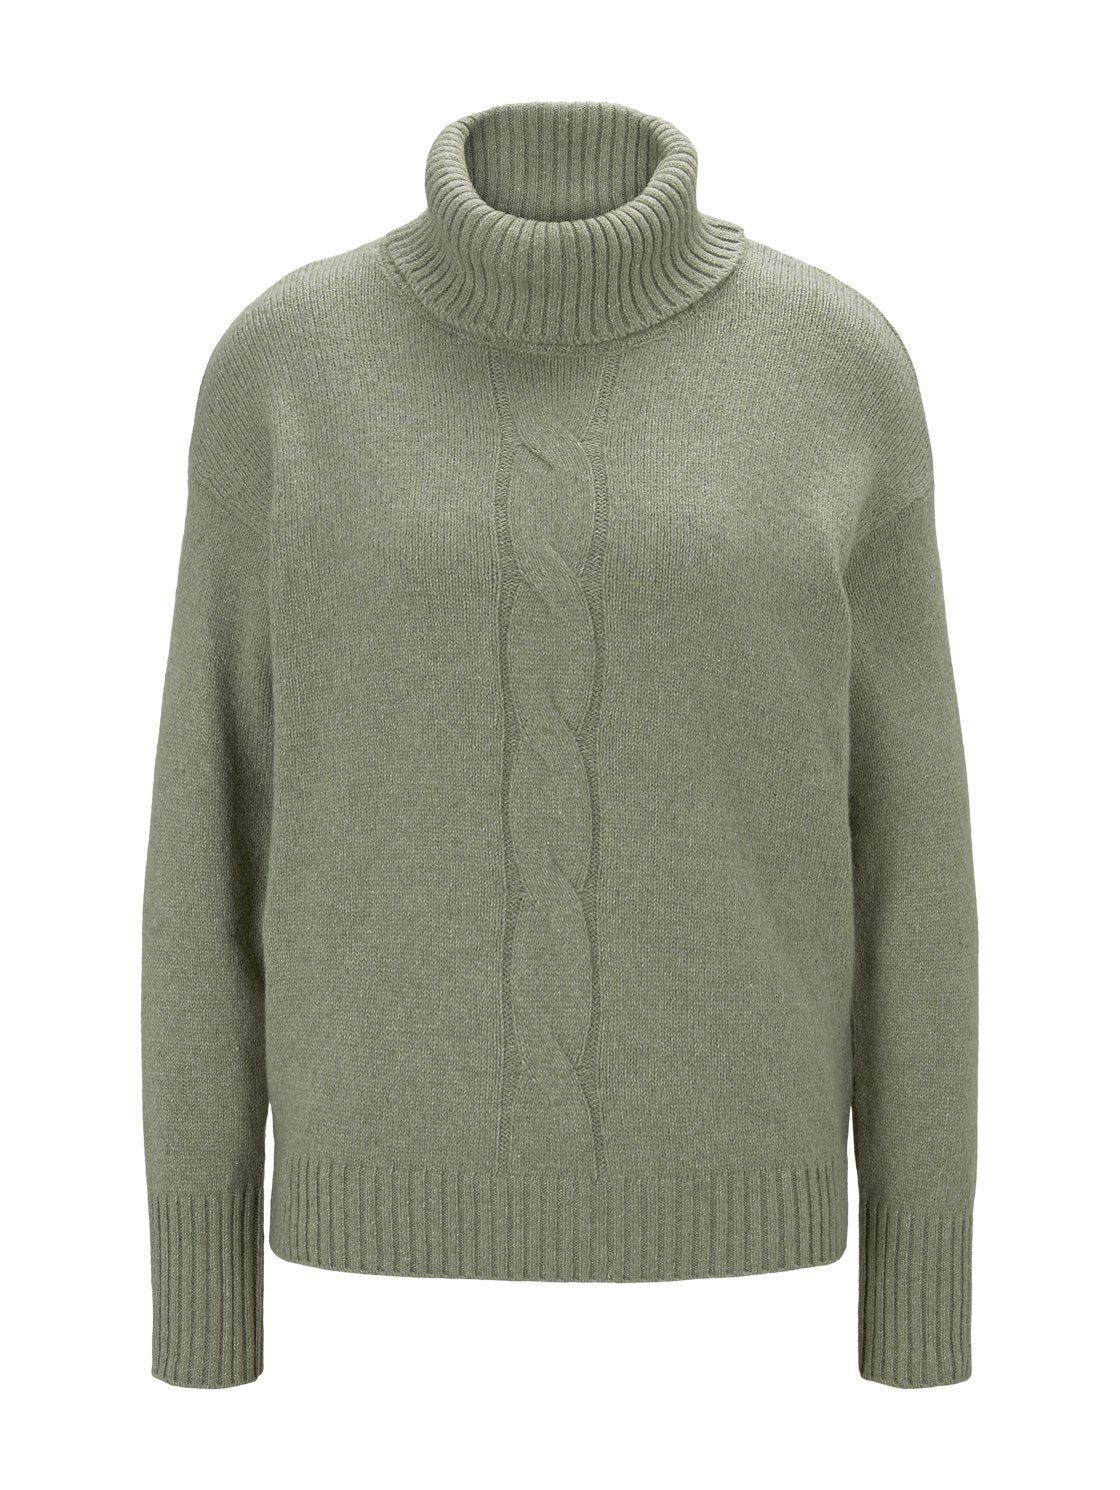 Tom Tailor green sweater 1023001